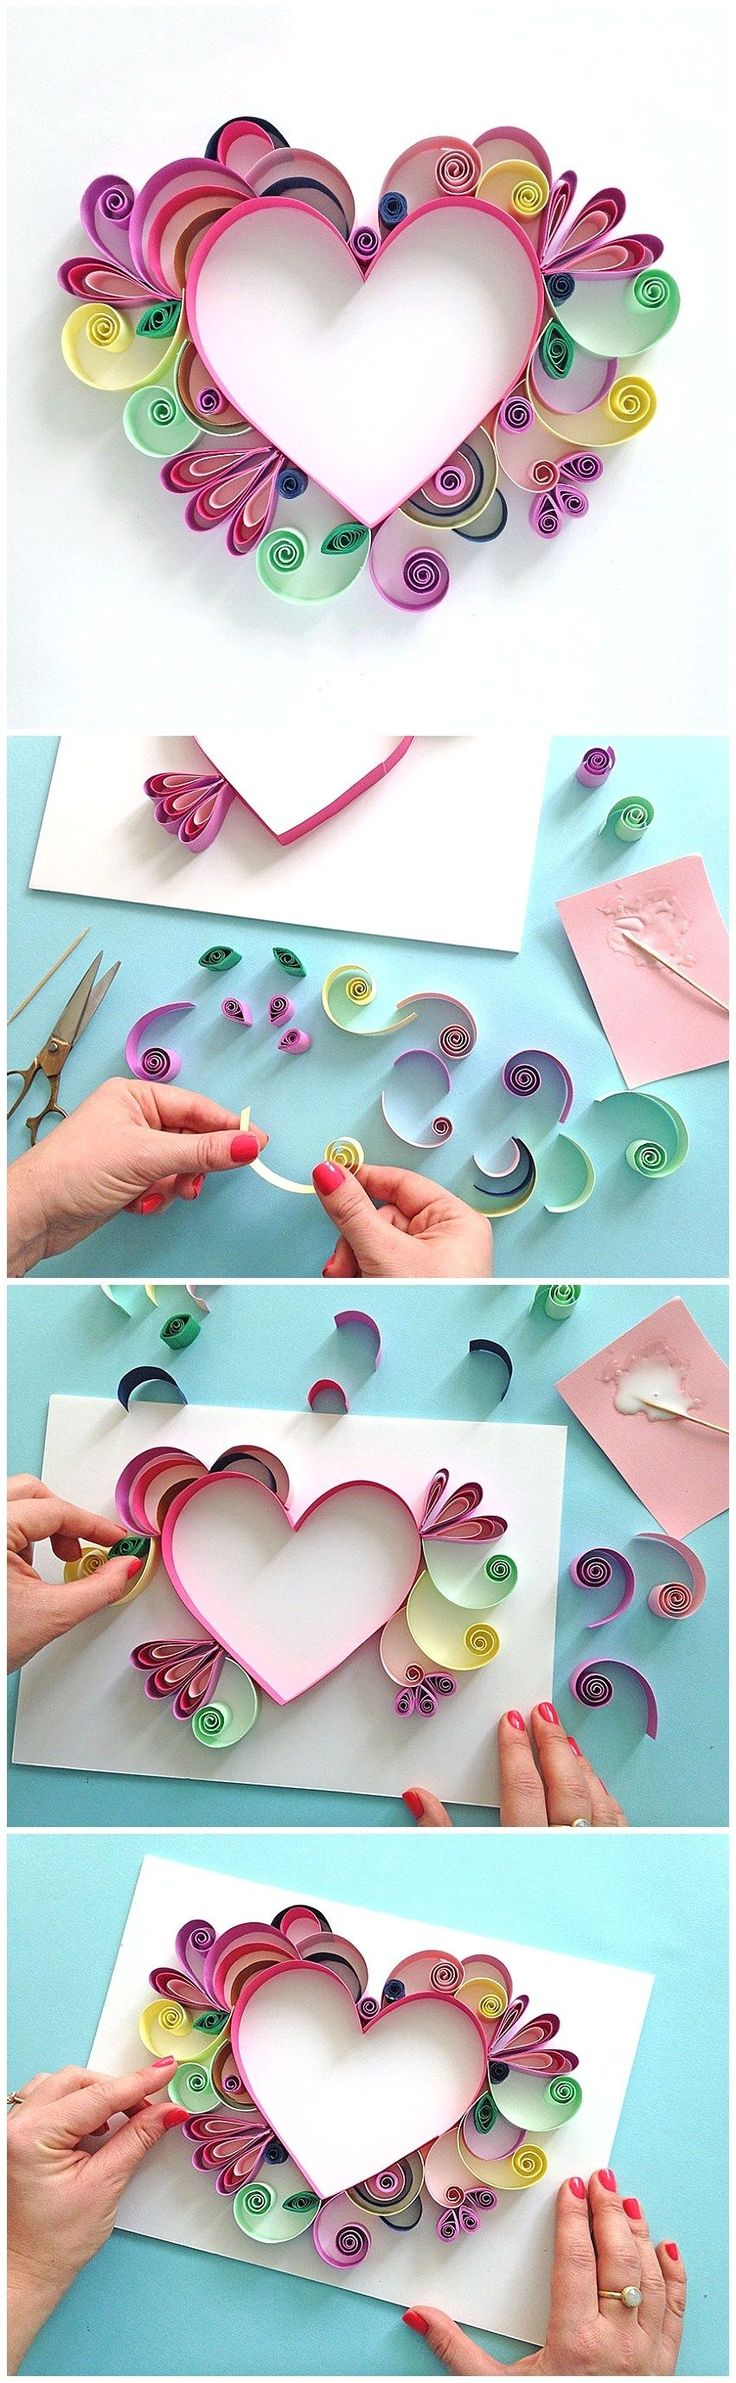 Learn How to Quill a darling Heart Shaped Mother's Day Paper Craft Gift Idea via Paper Chase - Moms and Grandmas will love these pretty handmade works of art! The BEST Easy DIY Mother's Day Gifts and Treats Ideas - Holiday Craft Activity Projects, Free Printables and Favorite Brunch Desserts Recipes for Moms and Grandmas